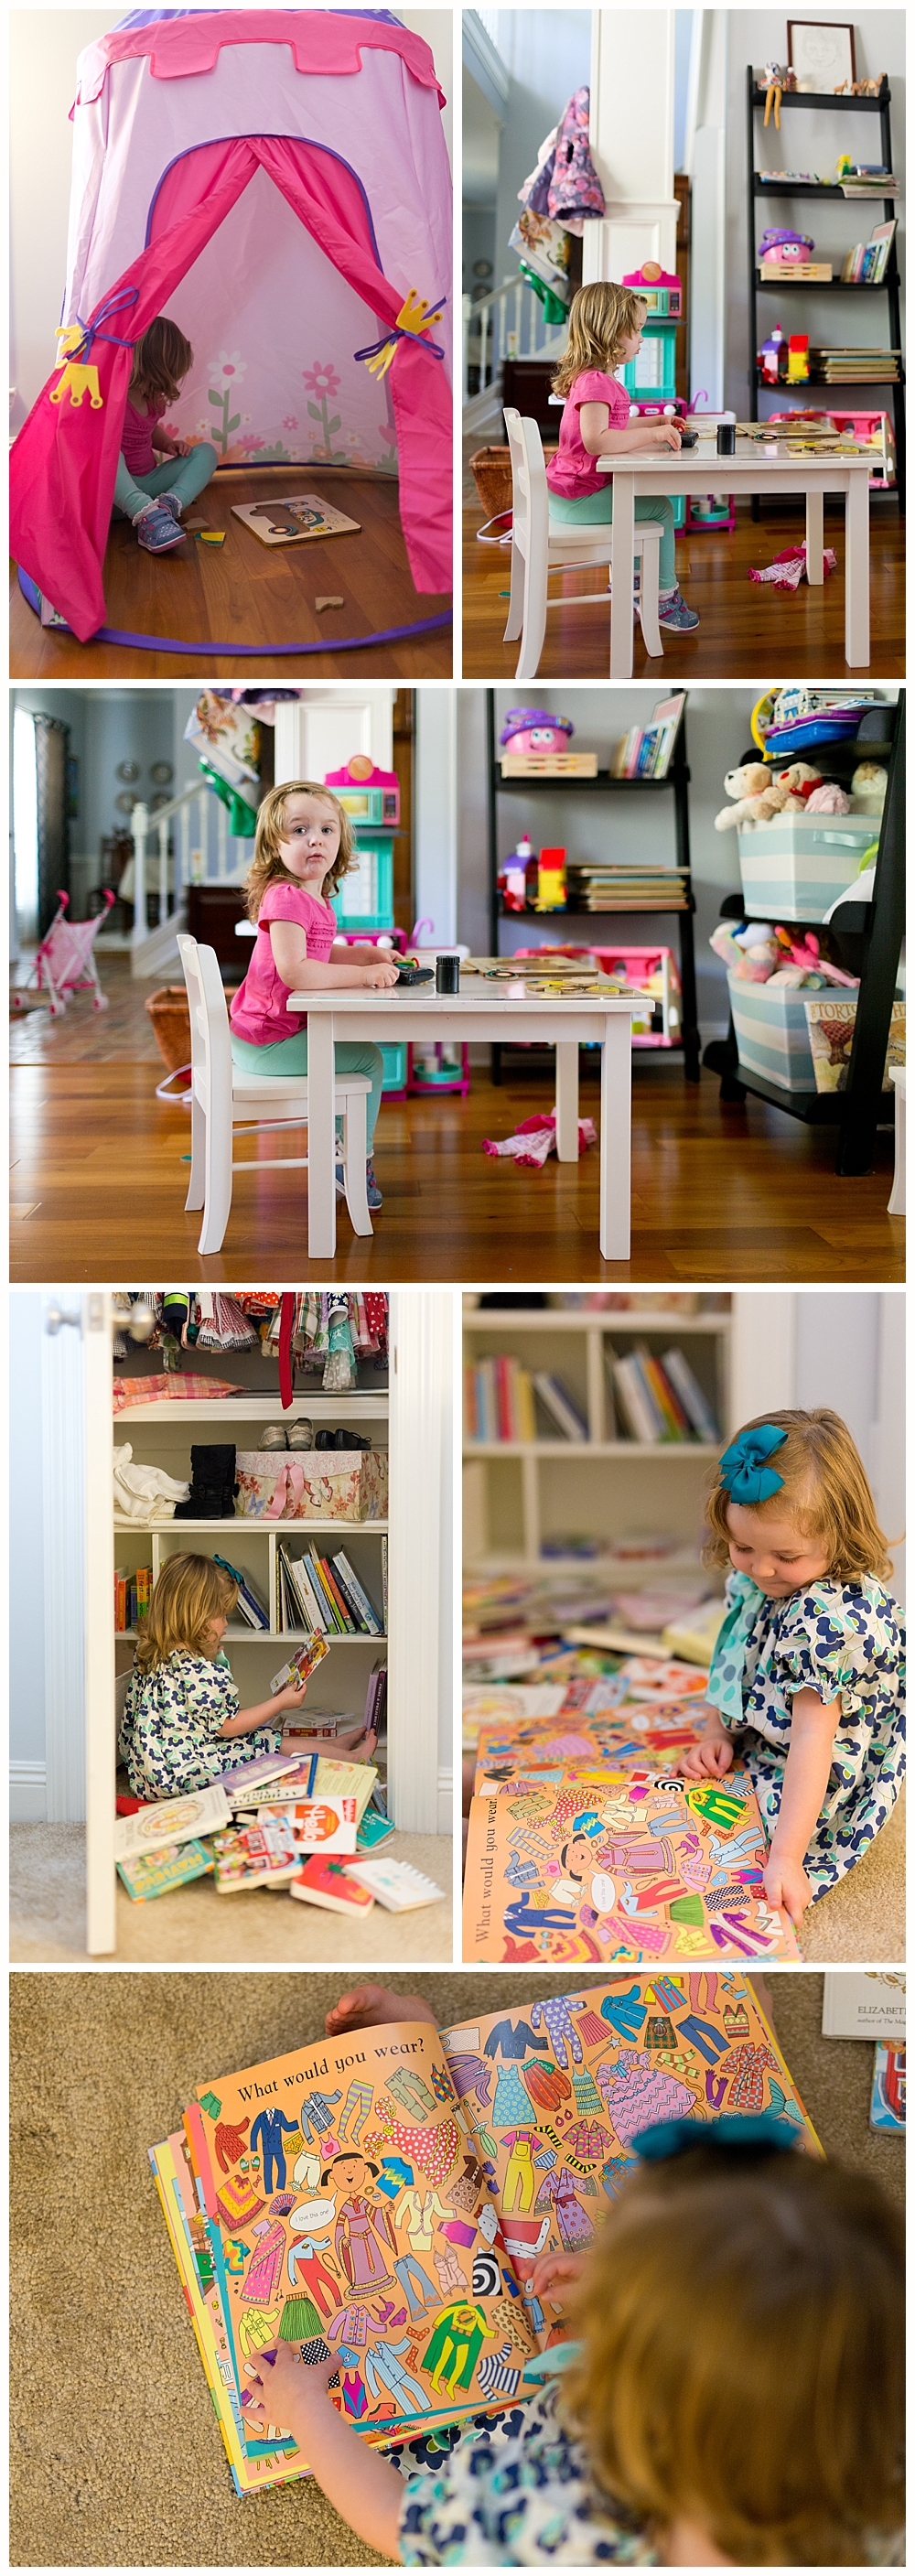 two-year-old girl playing in castle tent, in playroom, reading books in bedroom - Ocean Springs lifestyle photographer